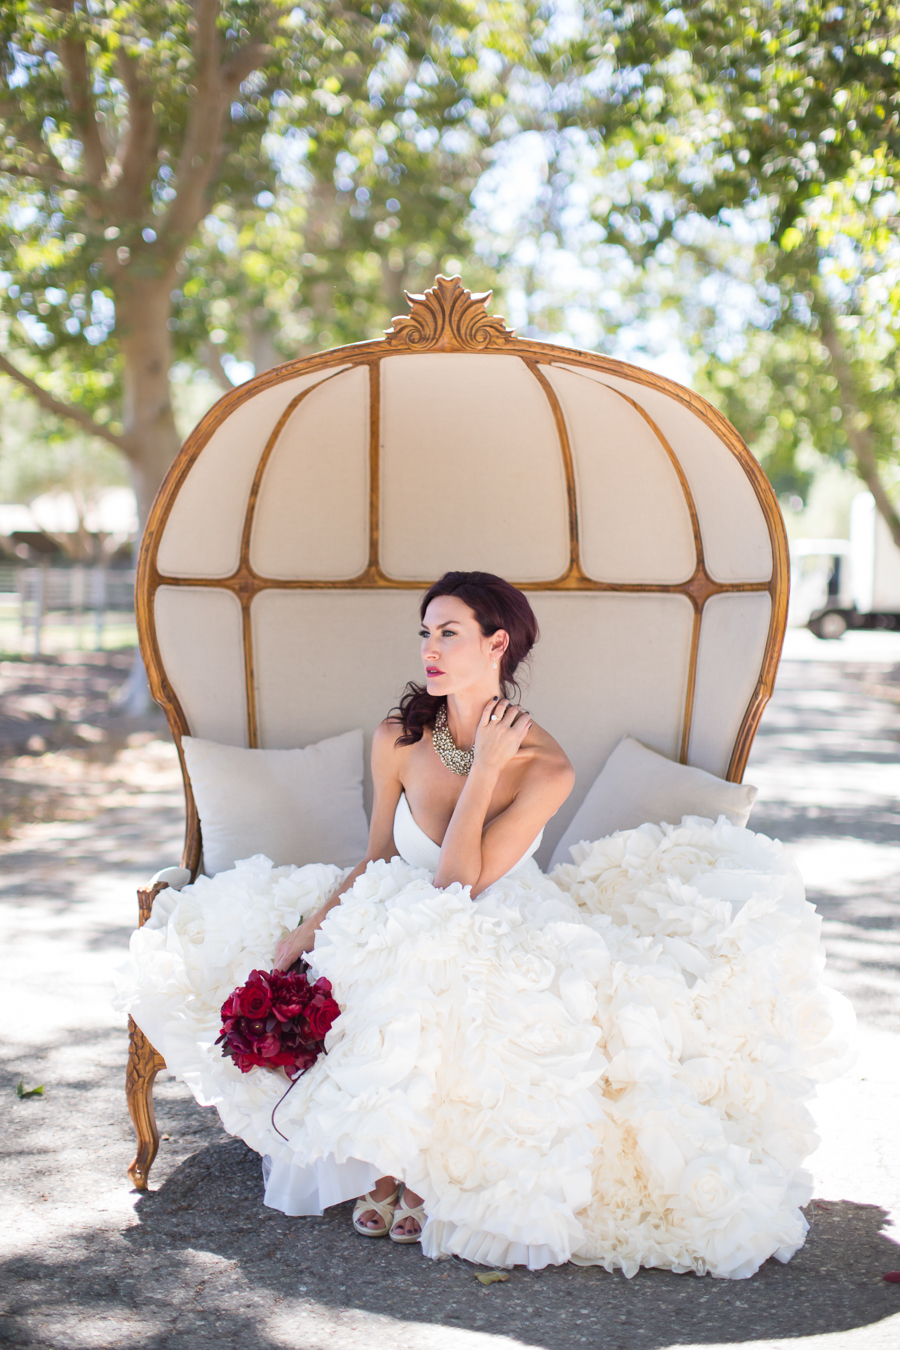 www.santabarbarawedding.com | Ann Johnson Events | Jessica Lewis Photo | Whispering Rose Ranch | Bride